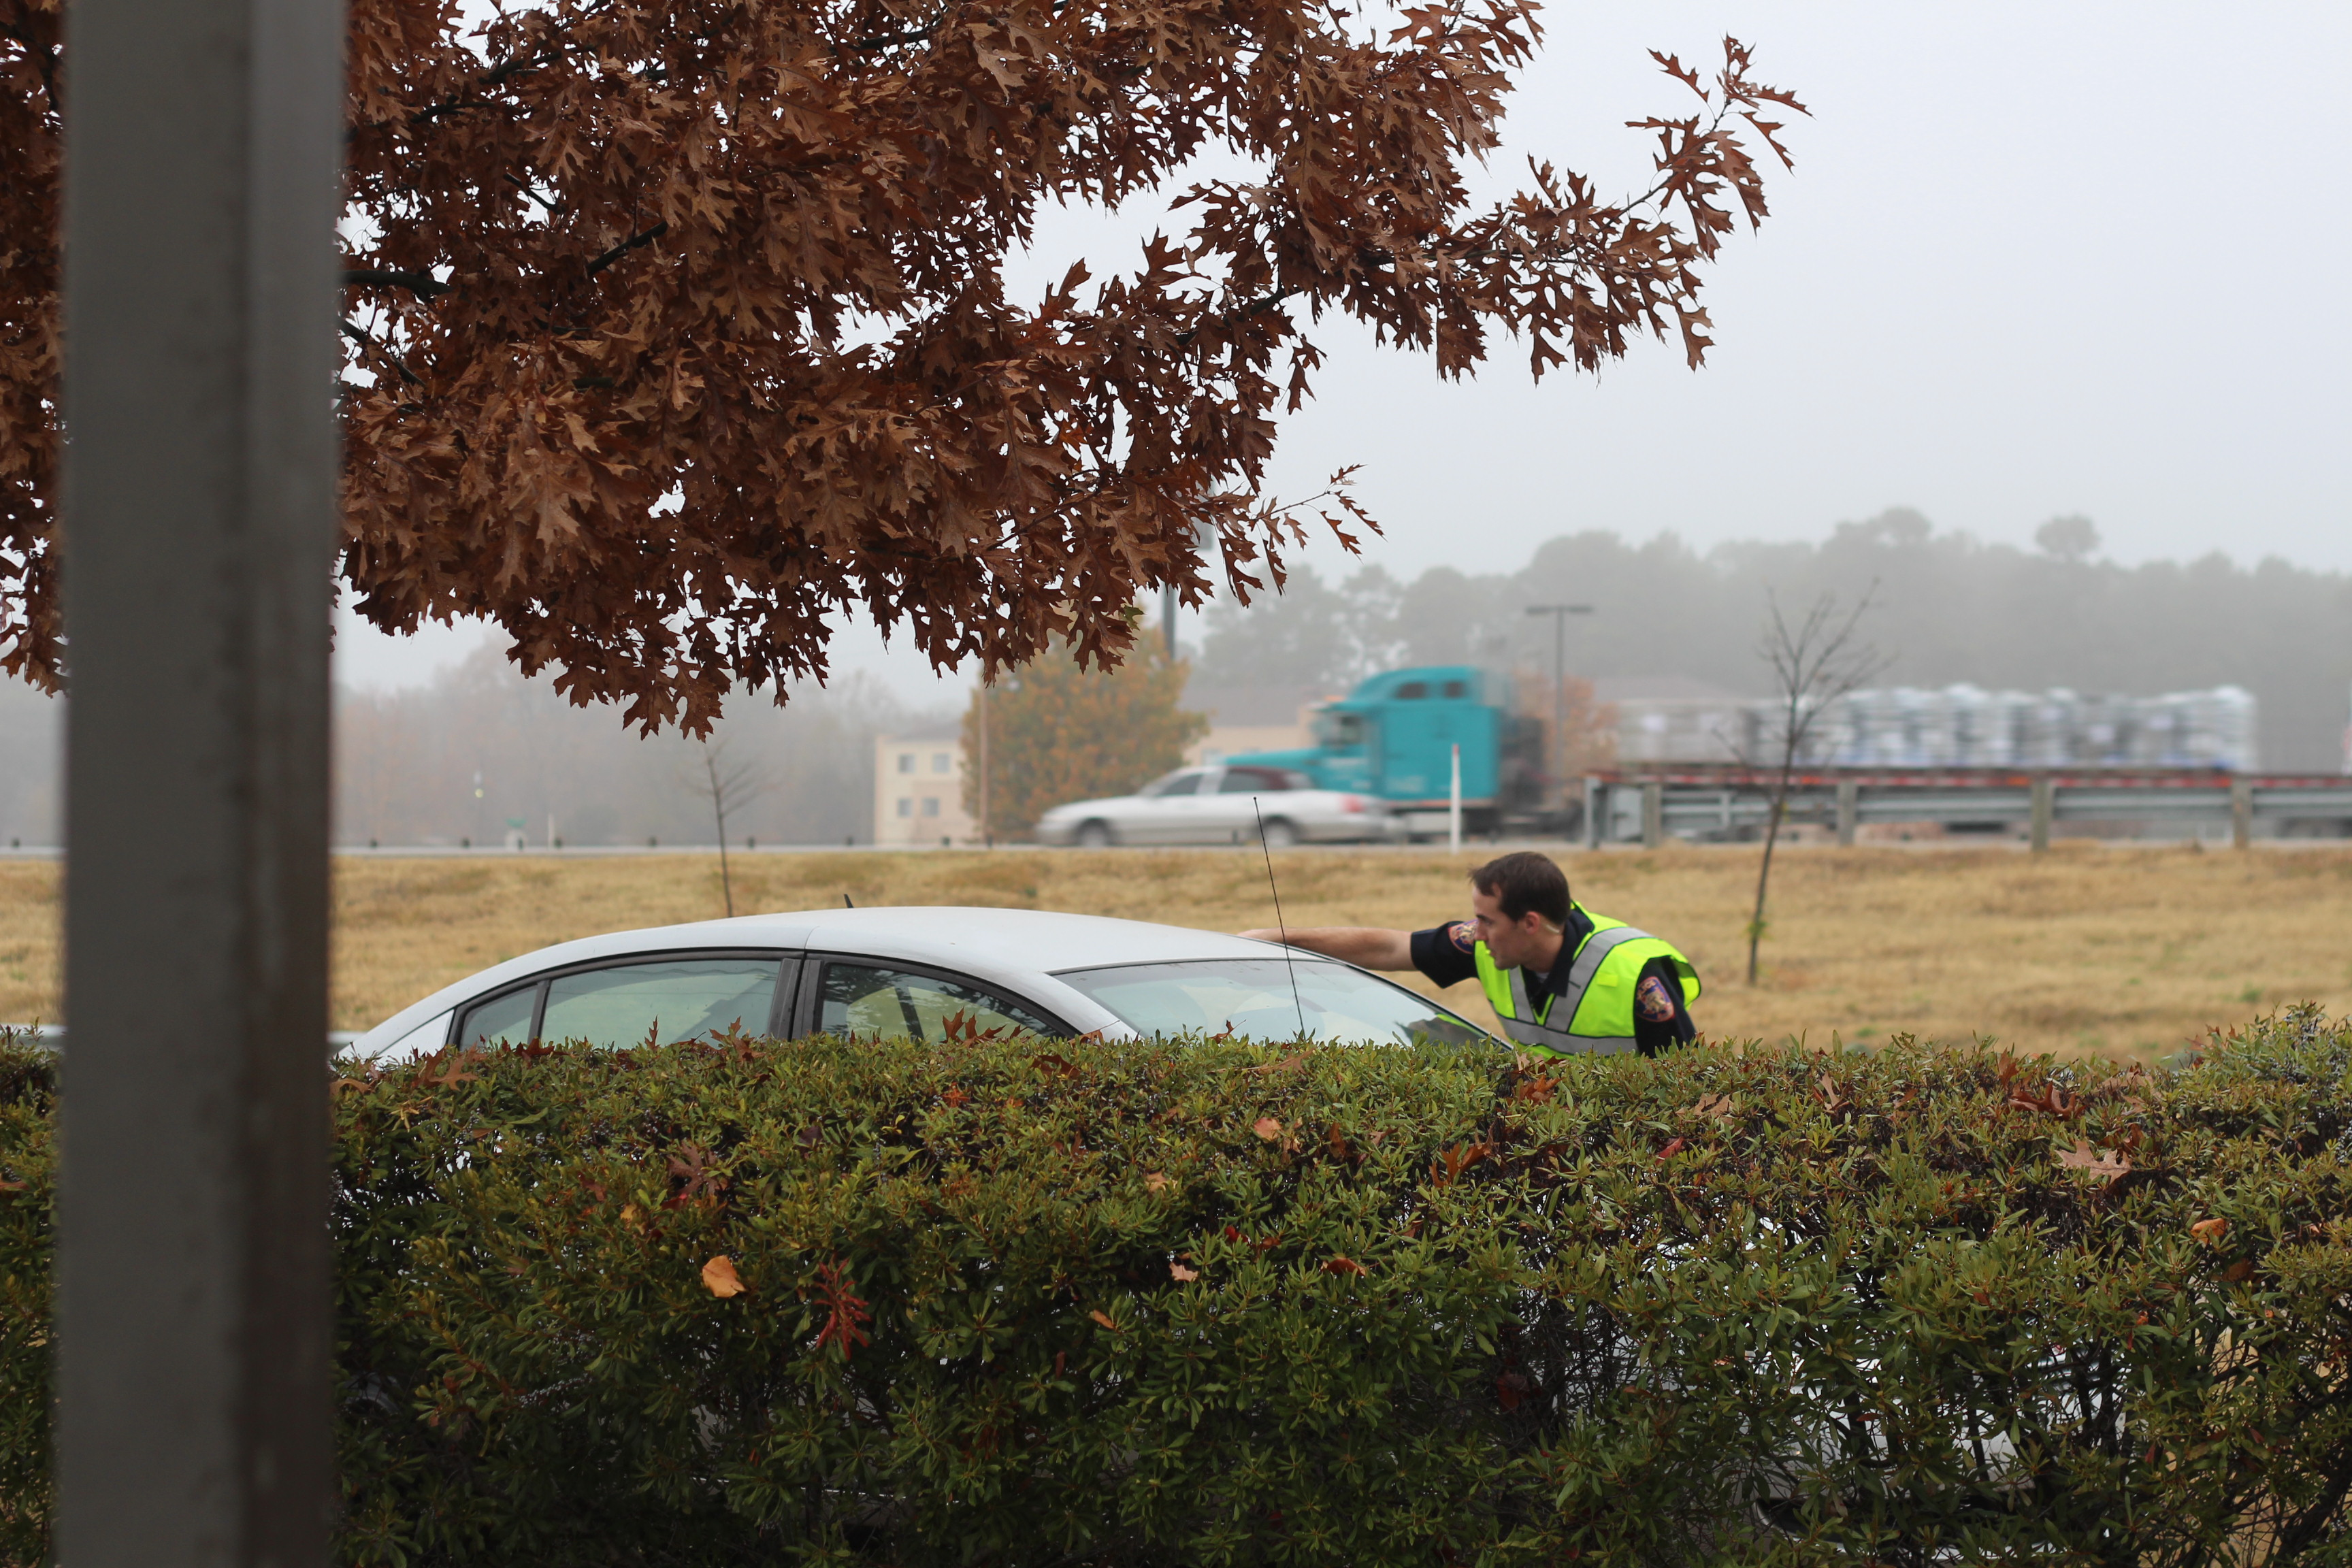 Vehicle Off The Road In Front Of Olive Garden Texarkana Today